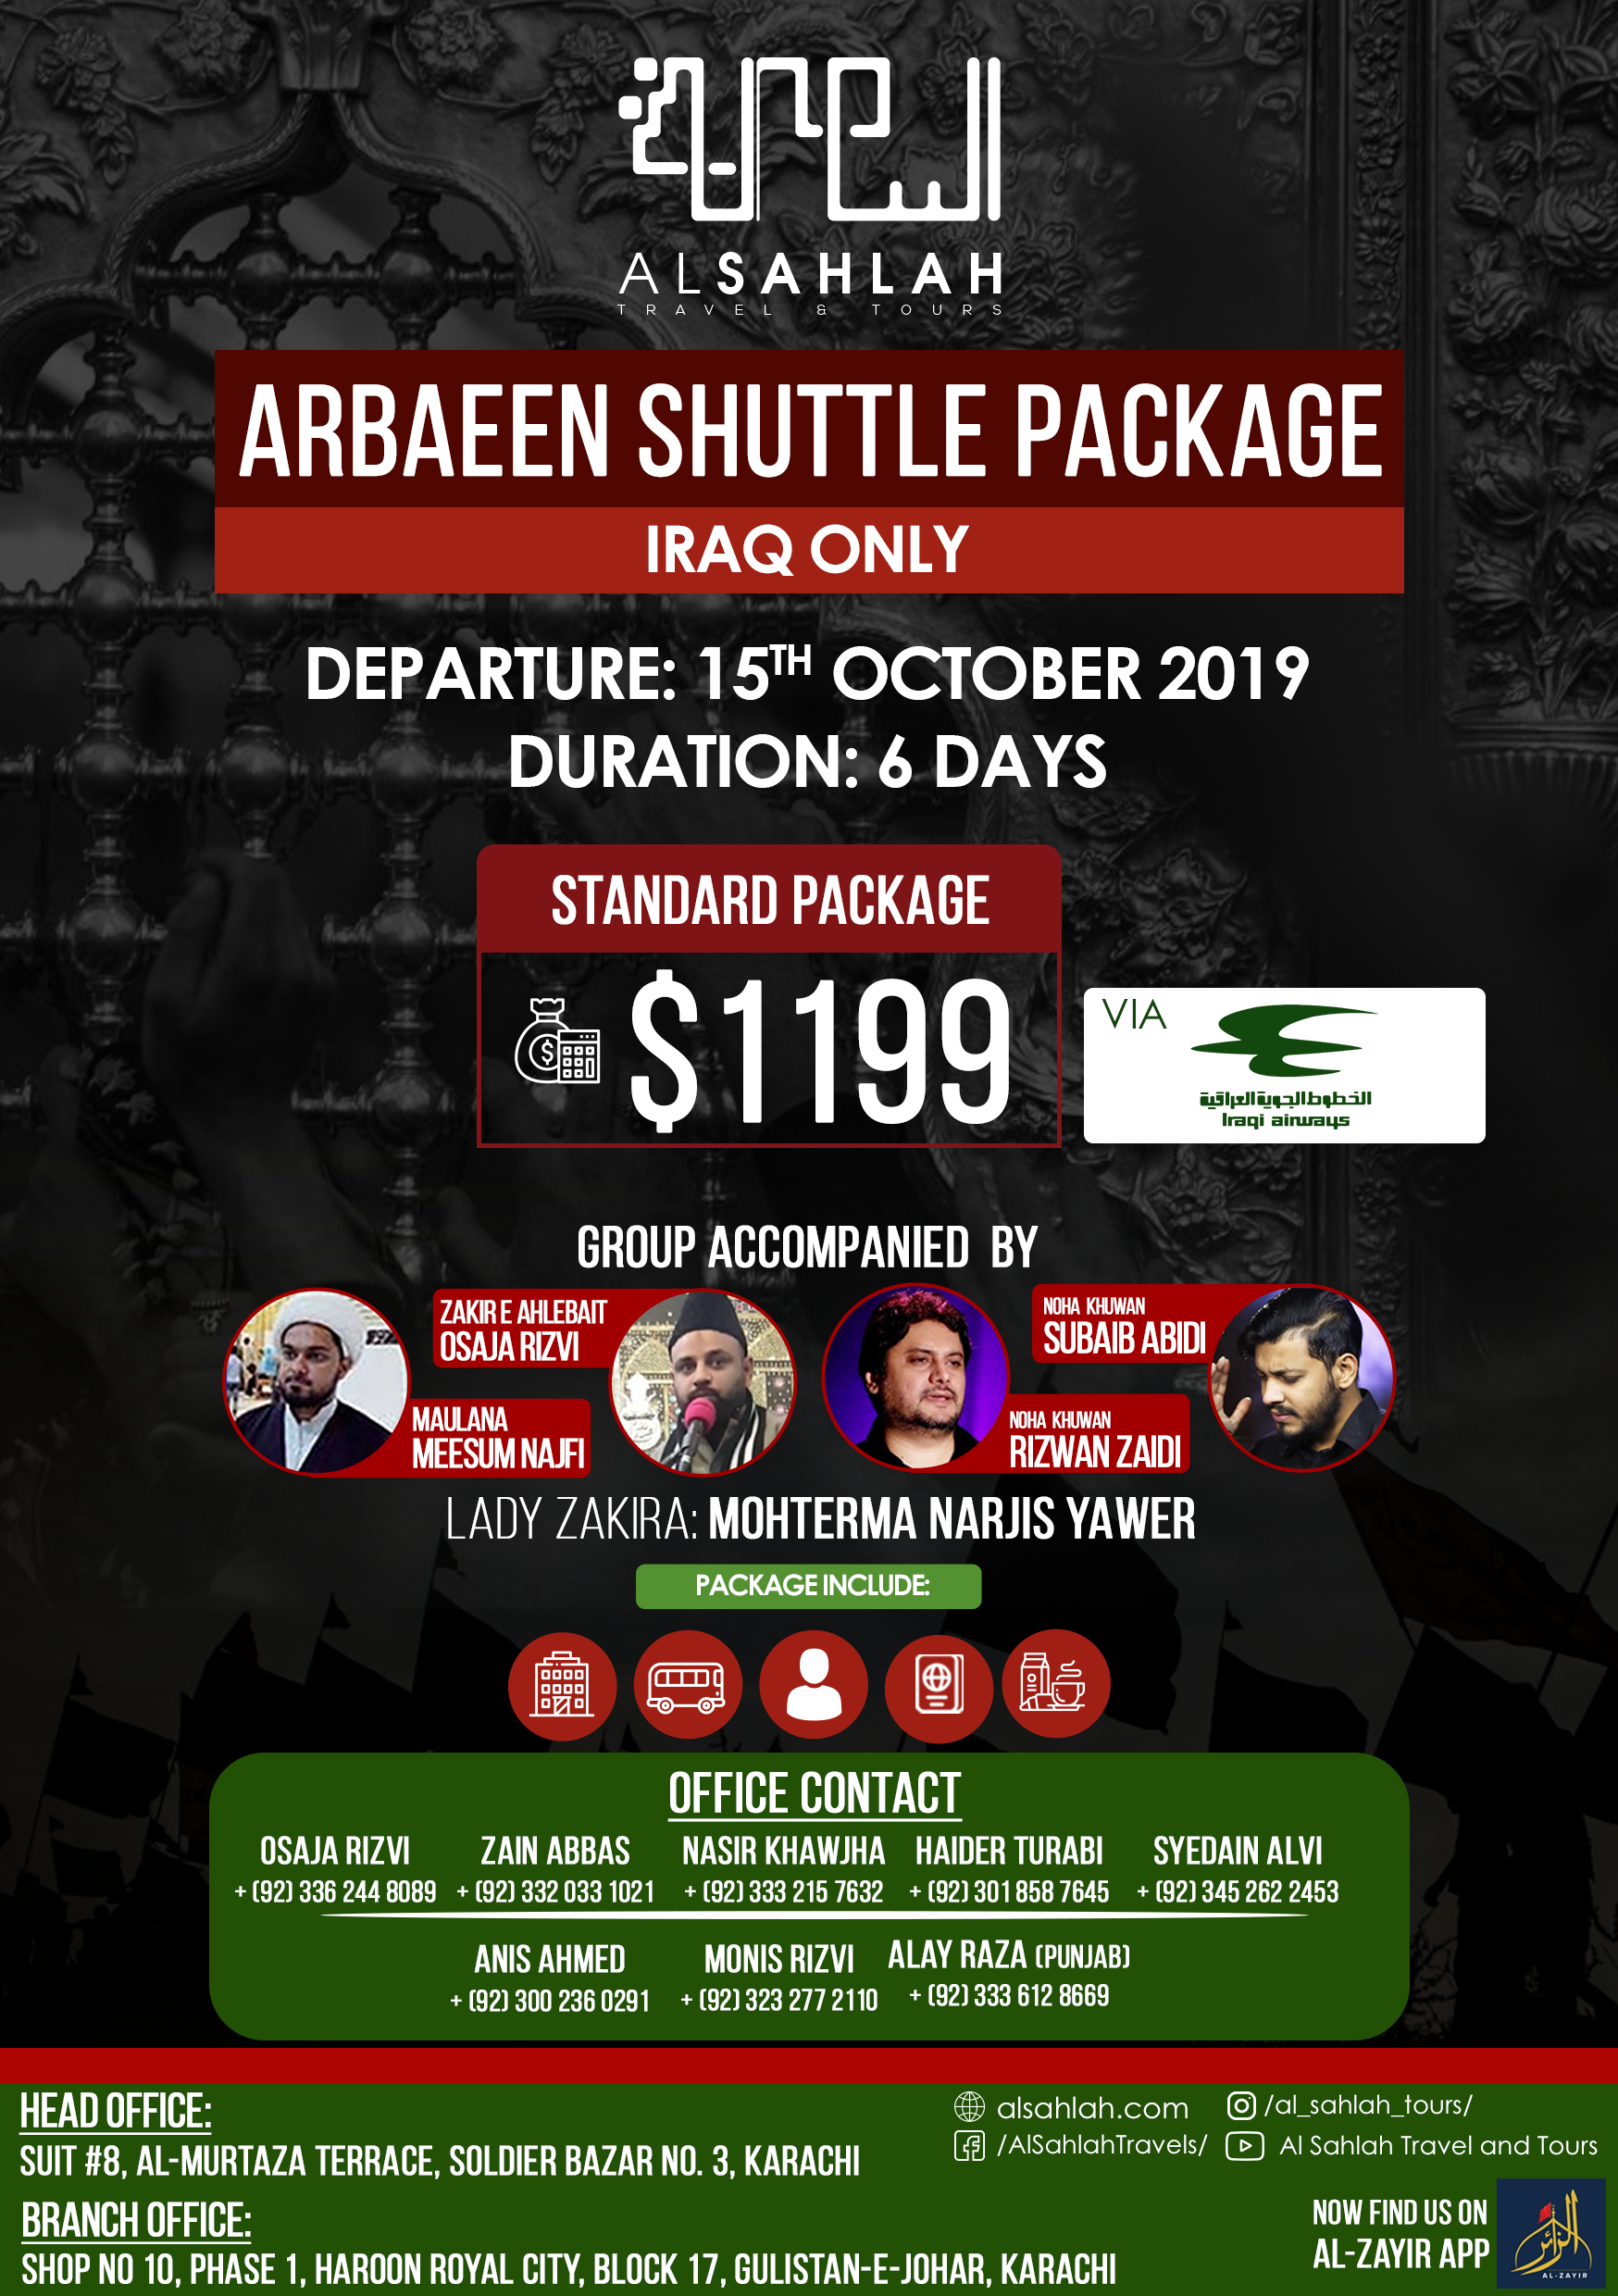 Arbaeen Shuttle Package